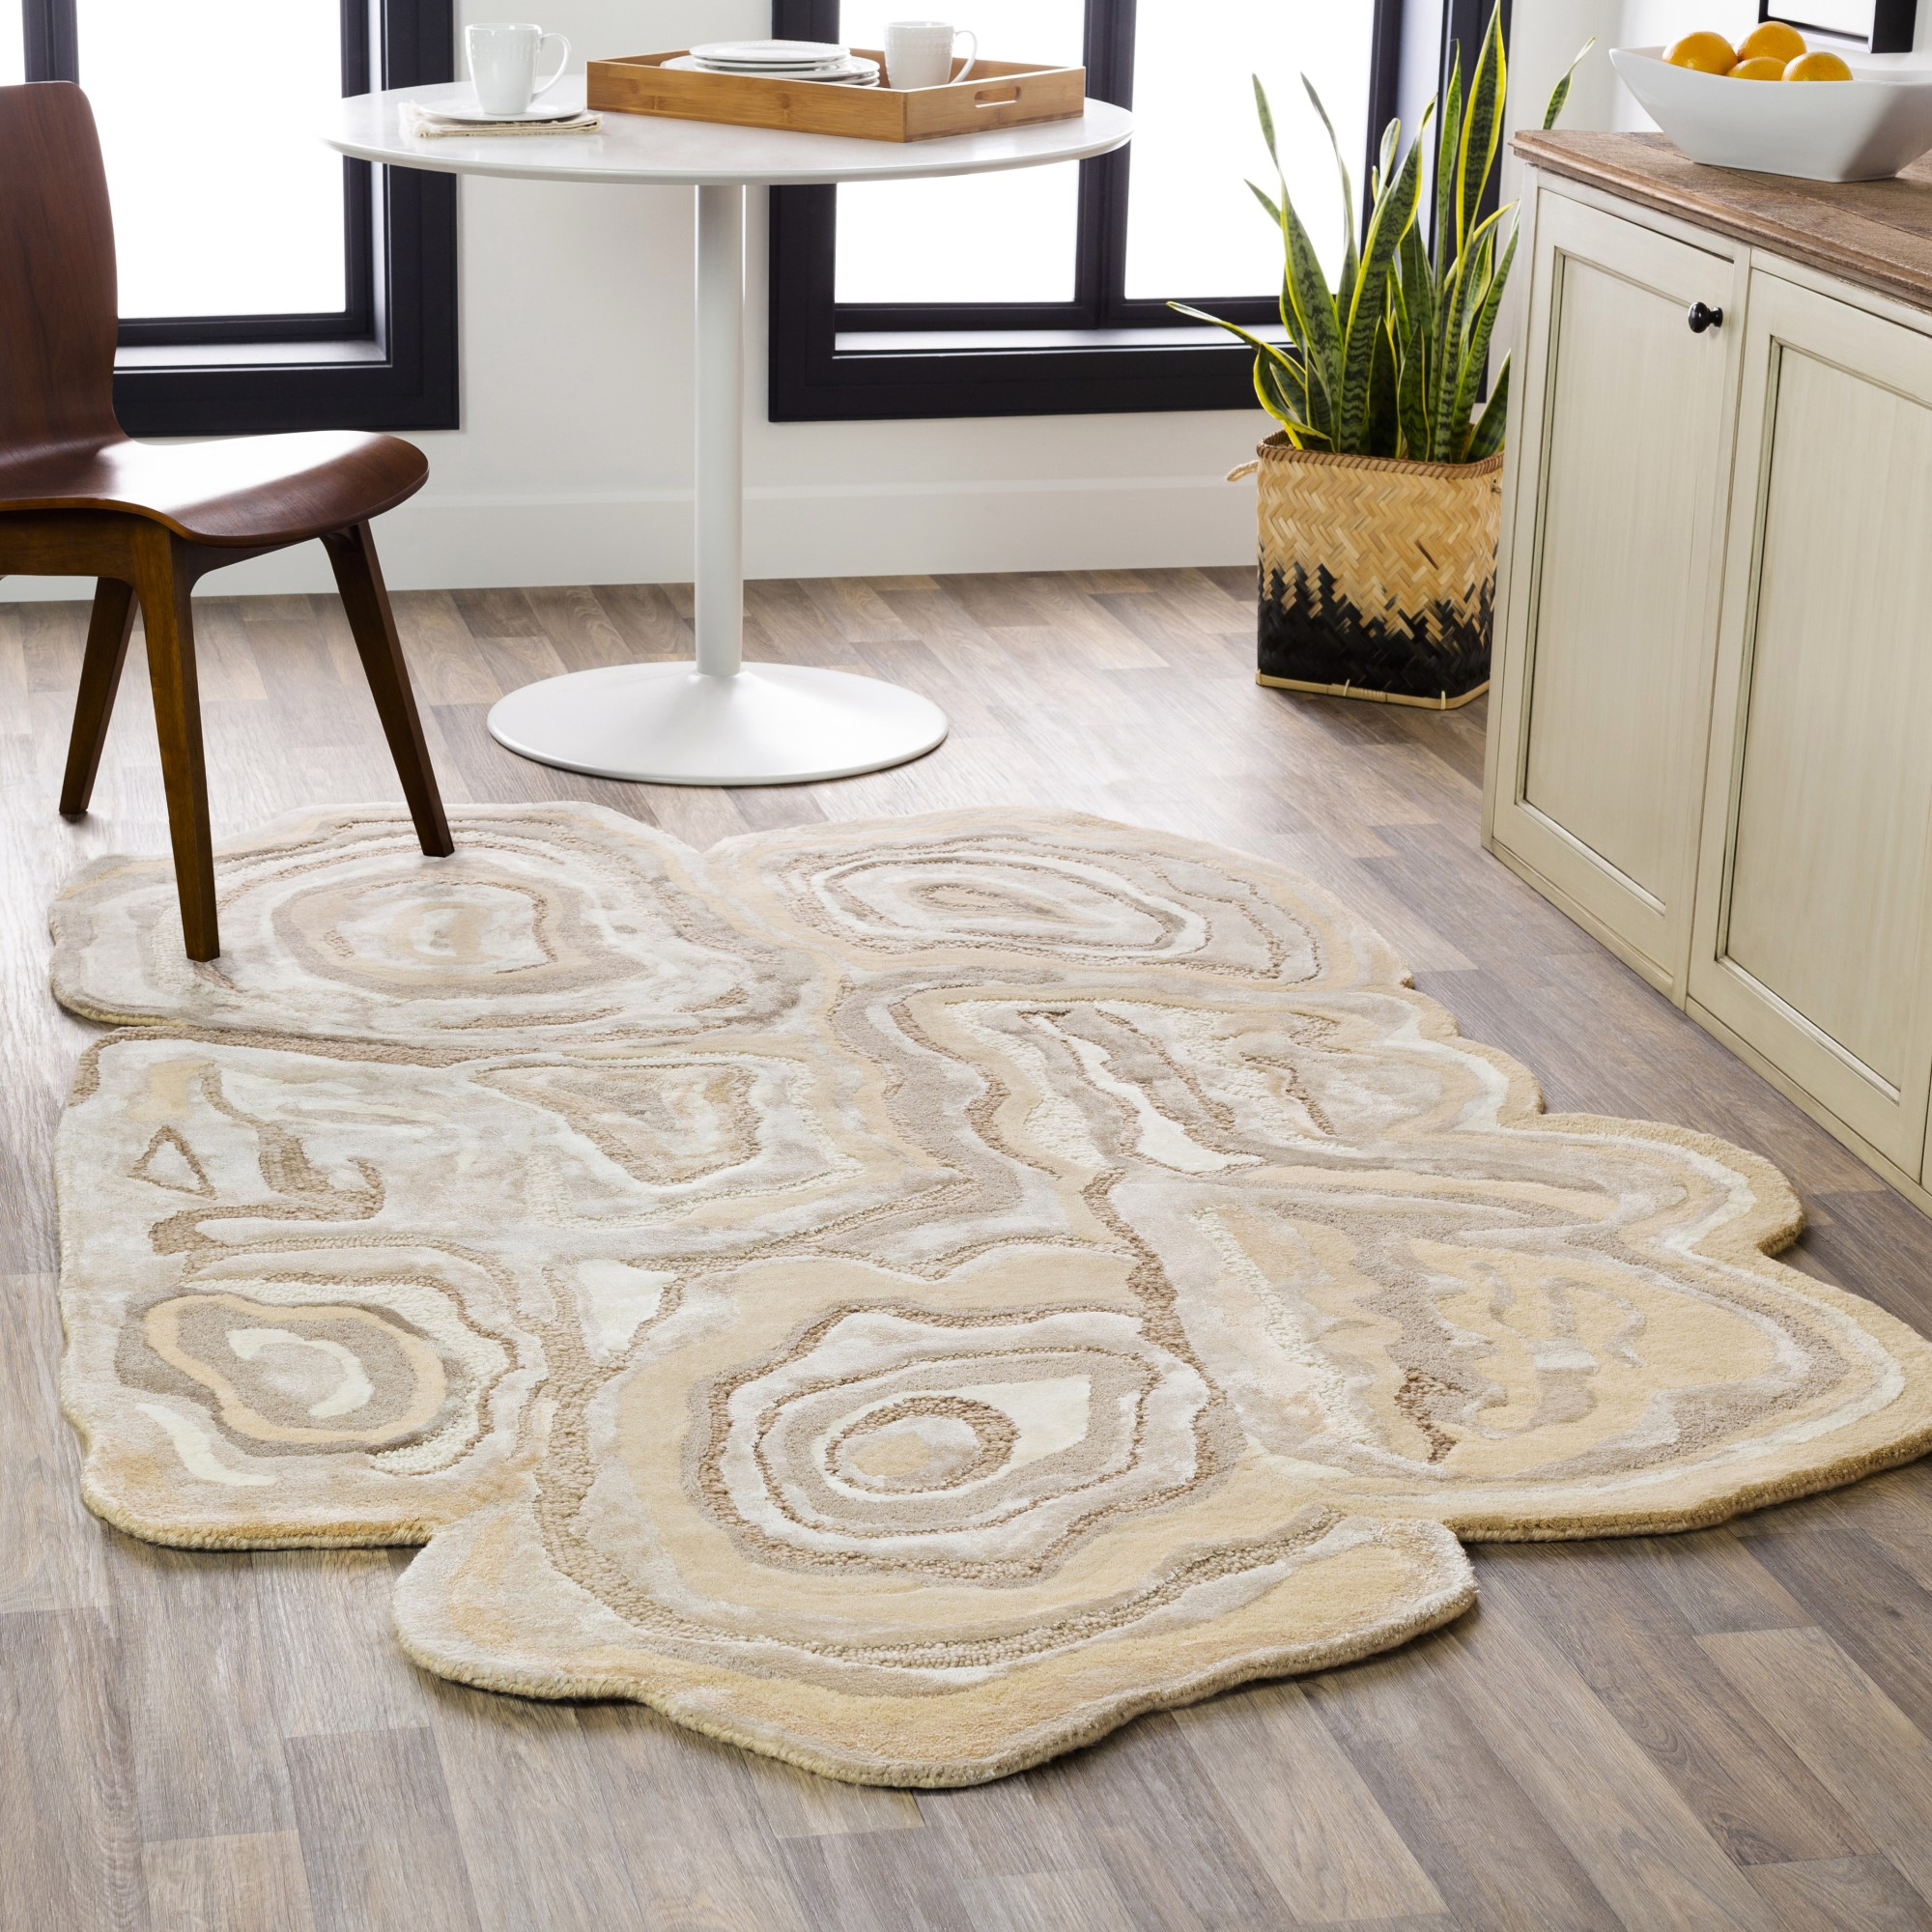 Gypsy Gyp 207 Abstract Wool Area Rugs